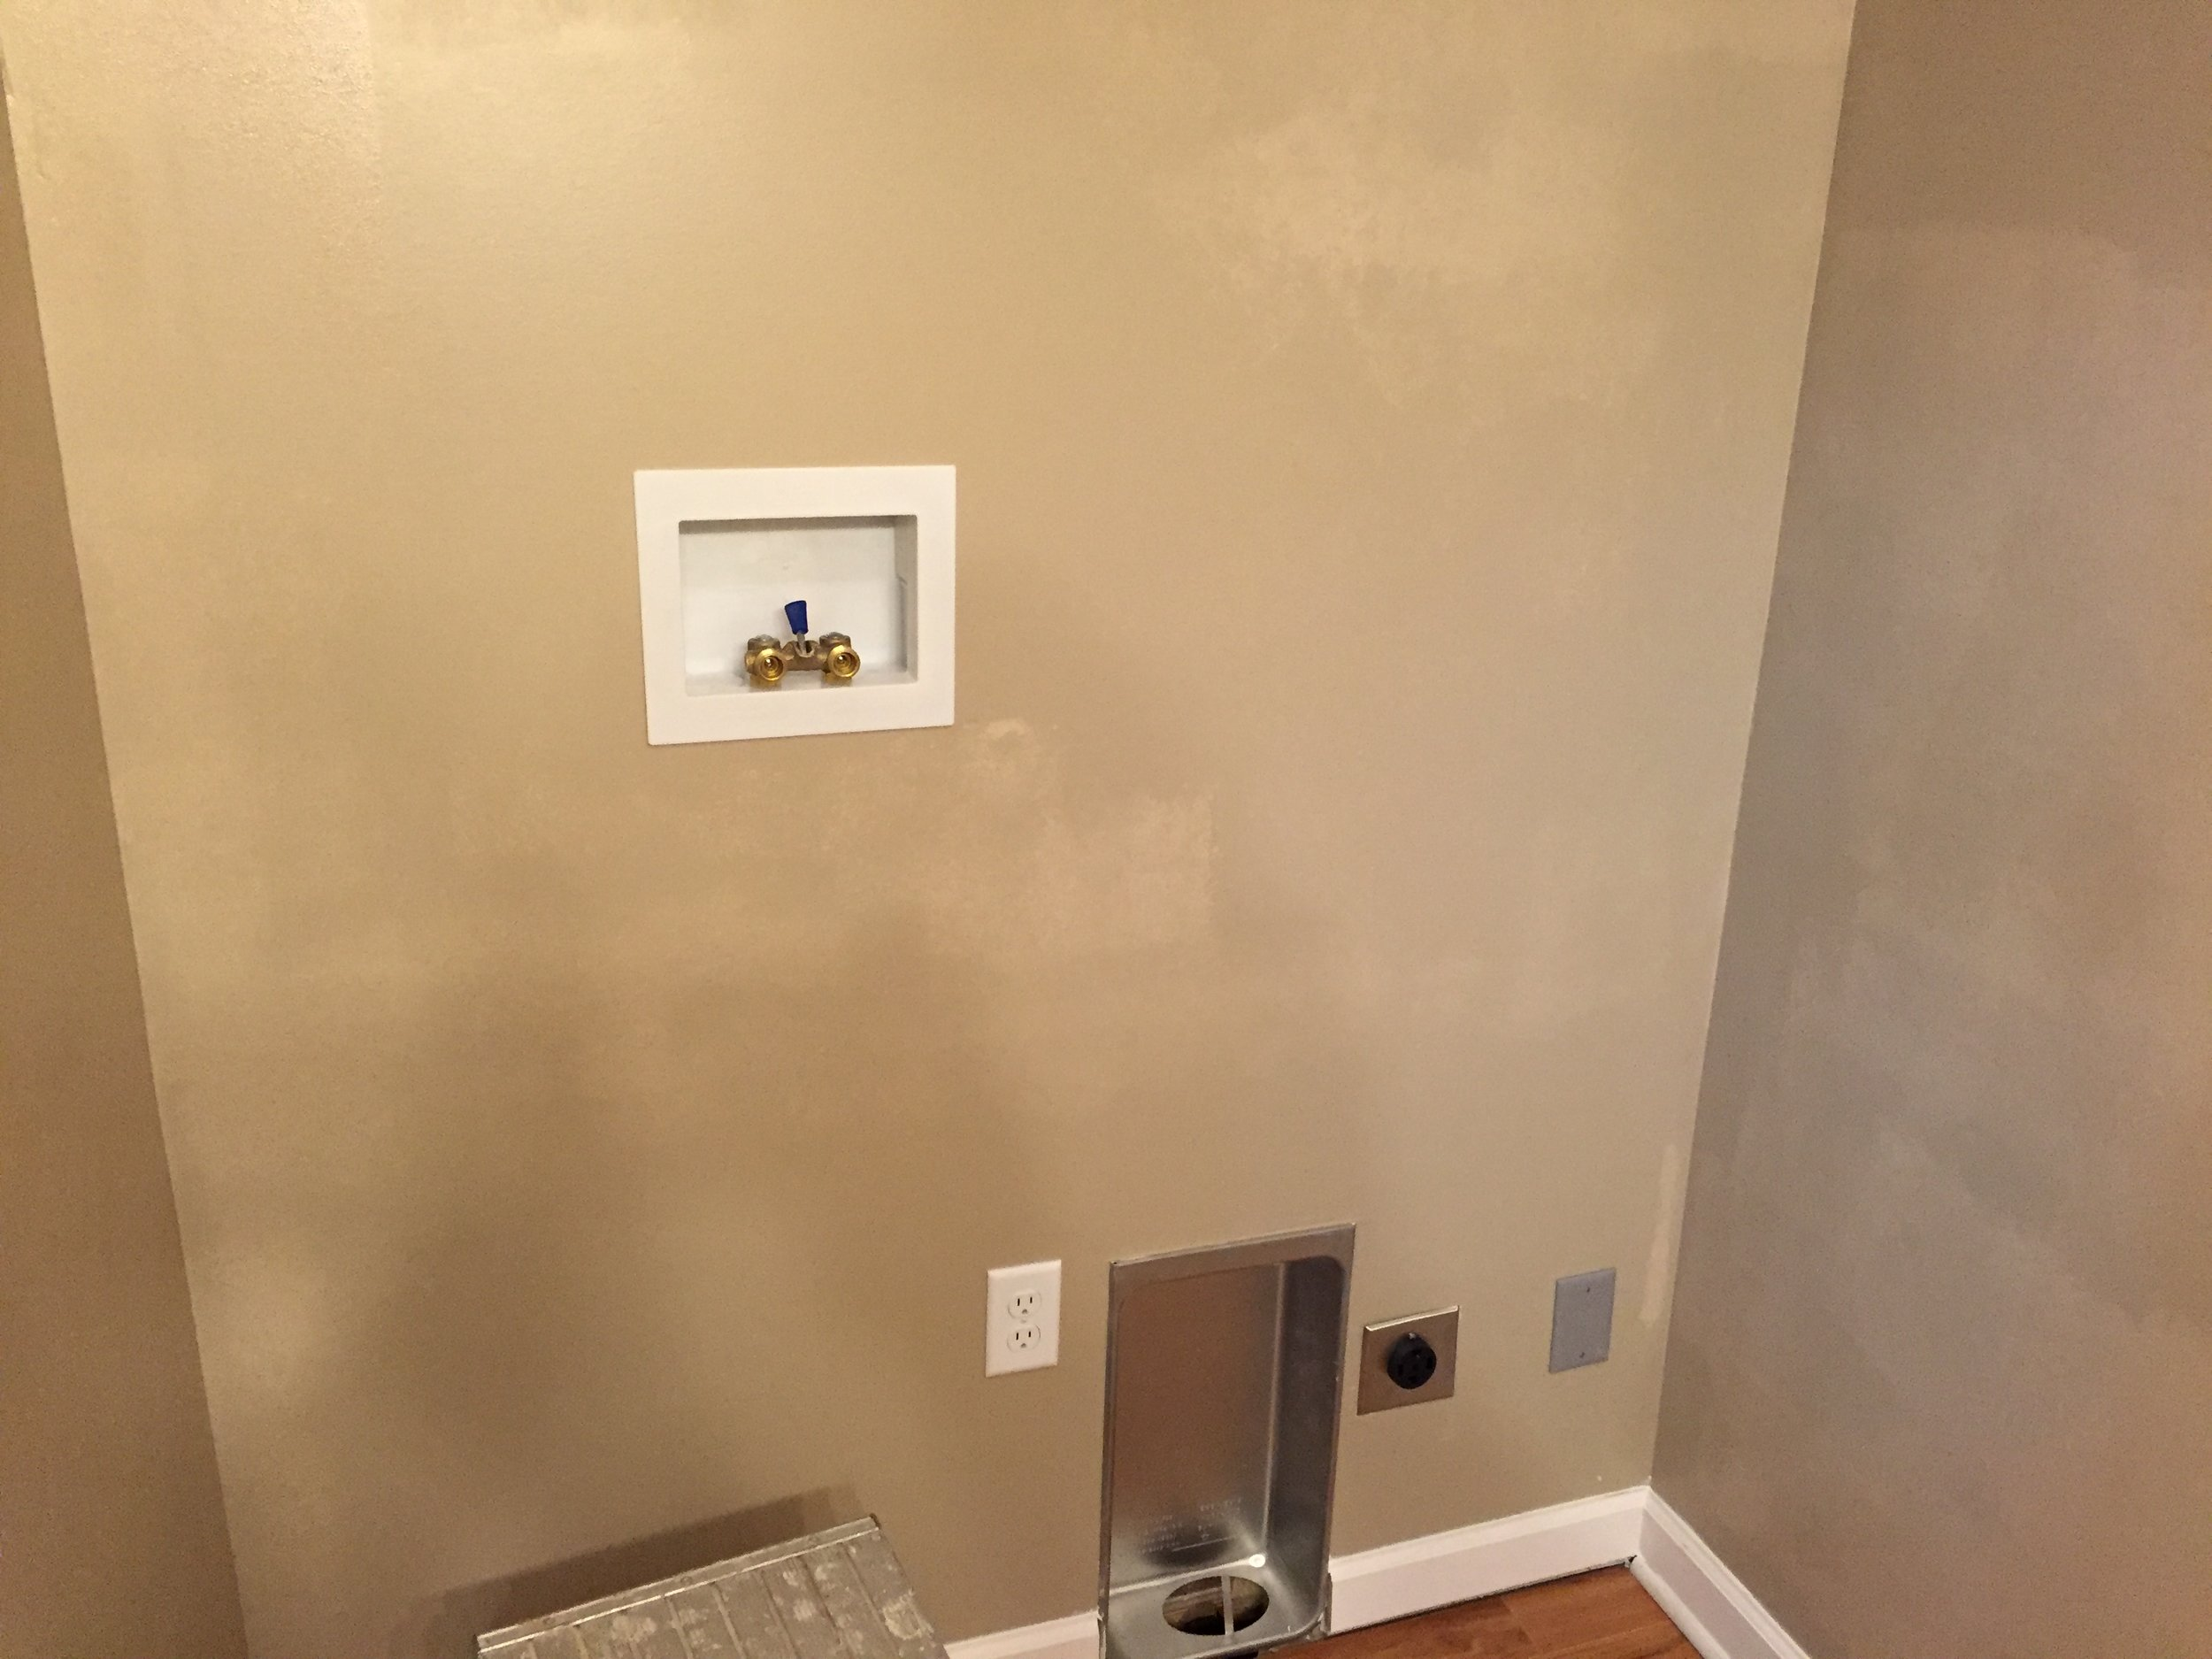 Flashing visible on drywall not properly primed before paint application.